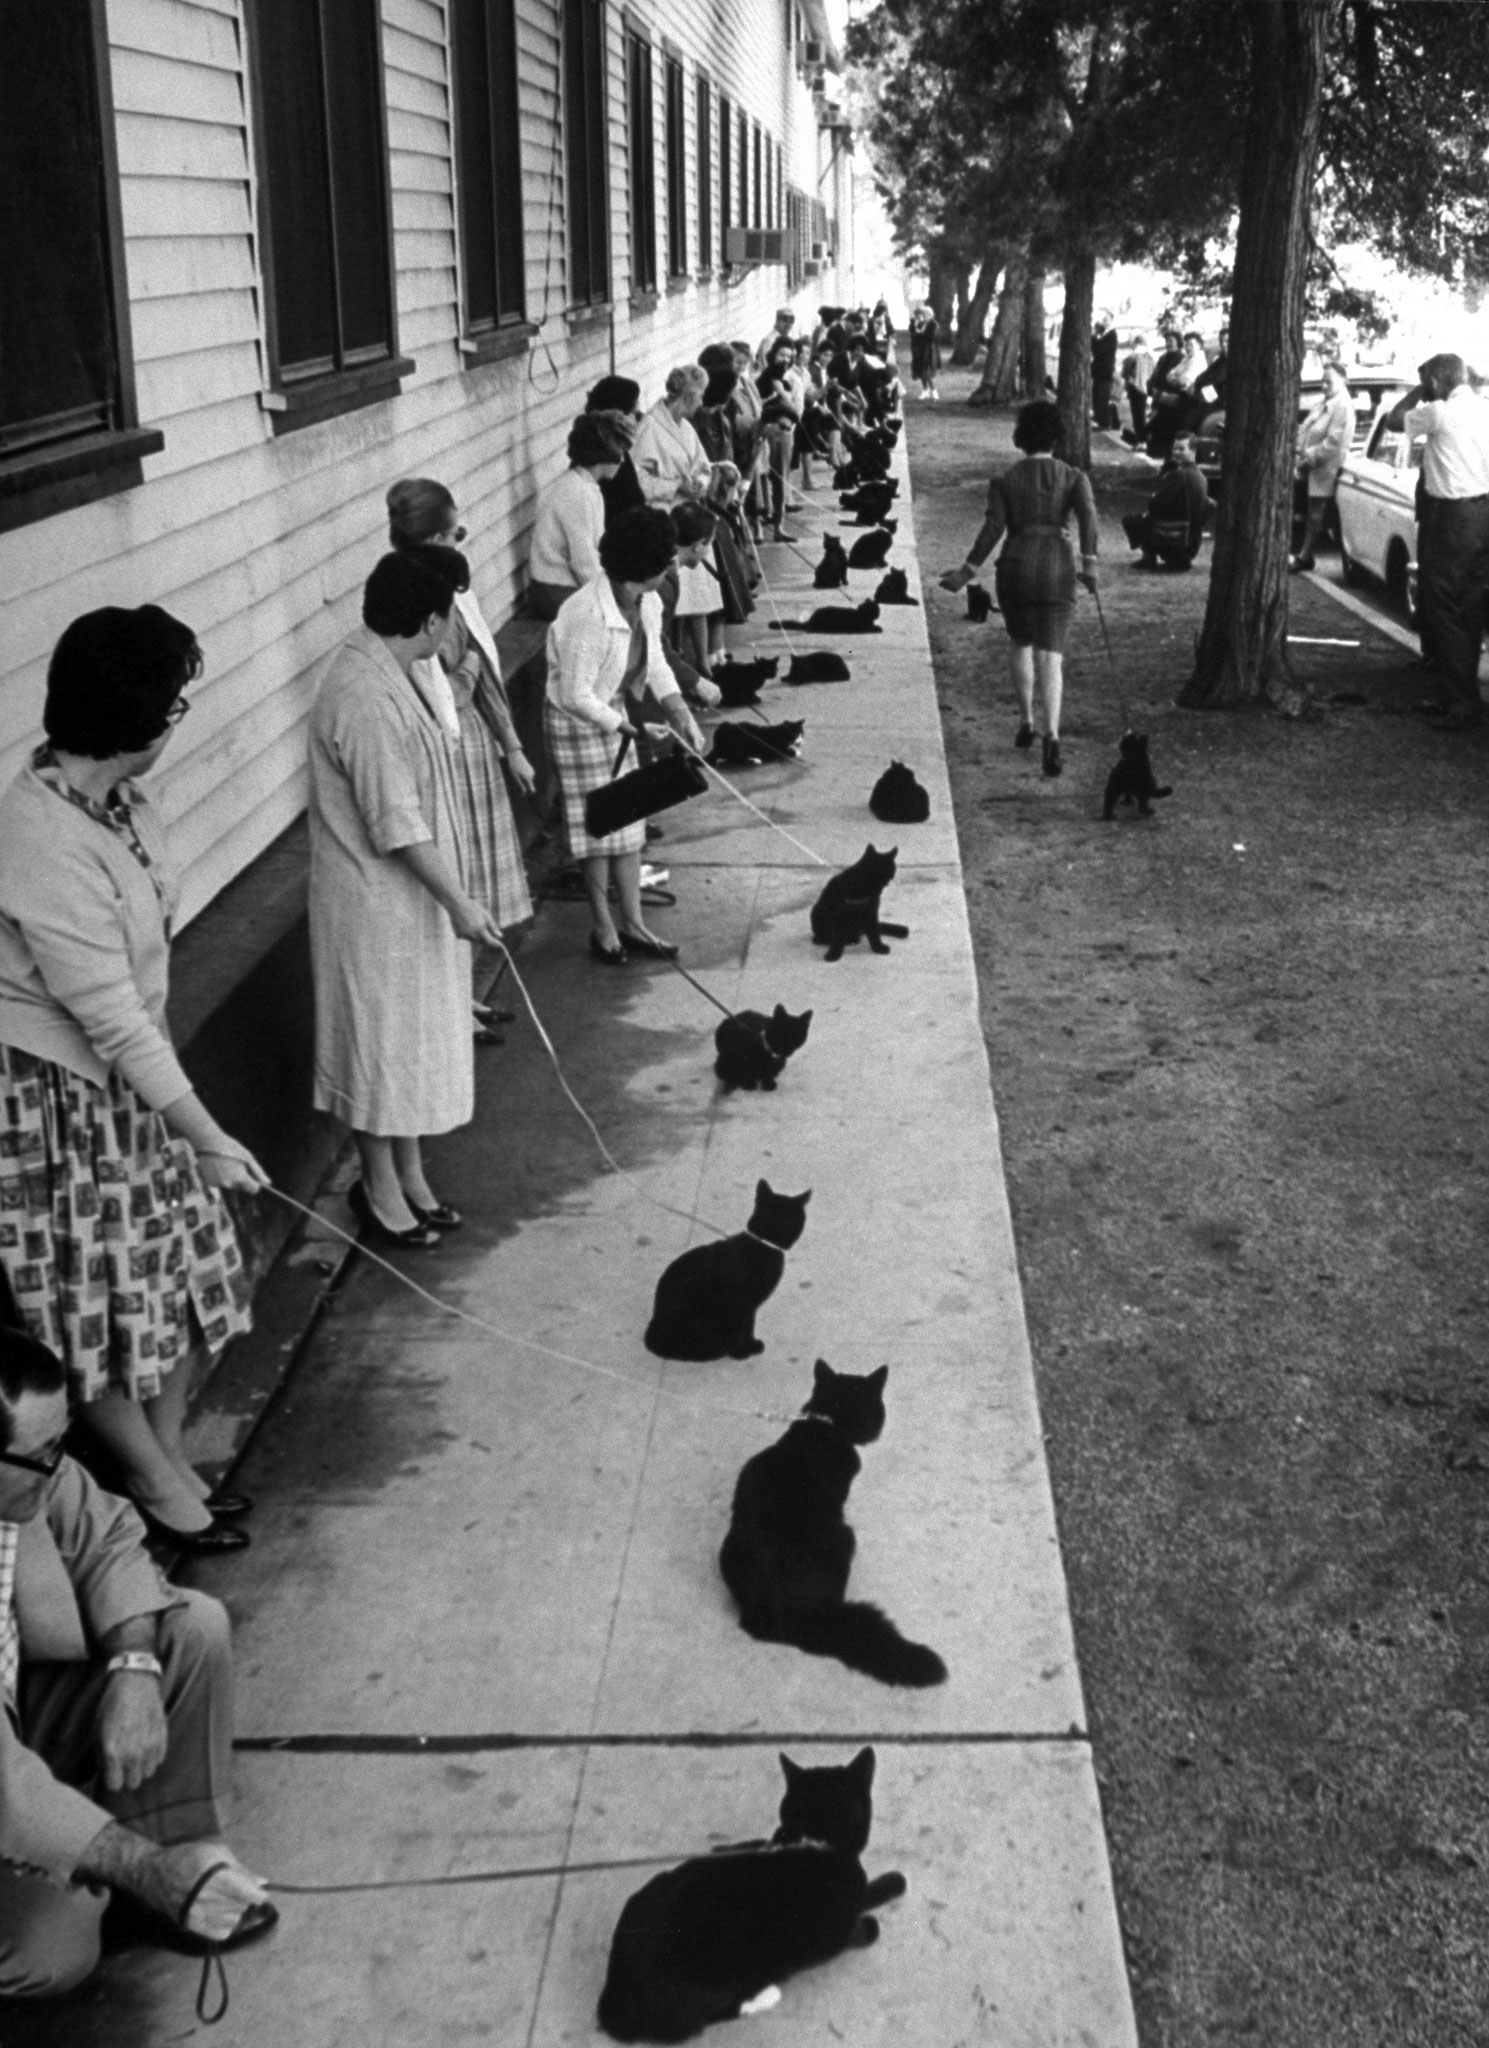 <b>Caption from LIFE.</b> Who's afraid of all these black cats?